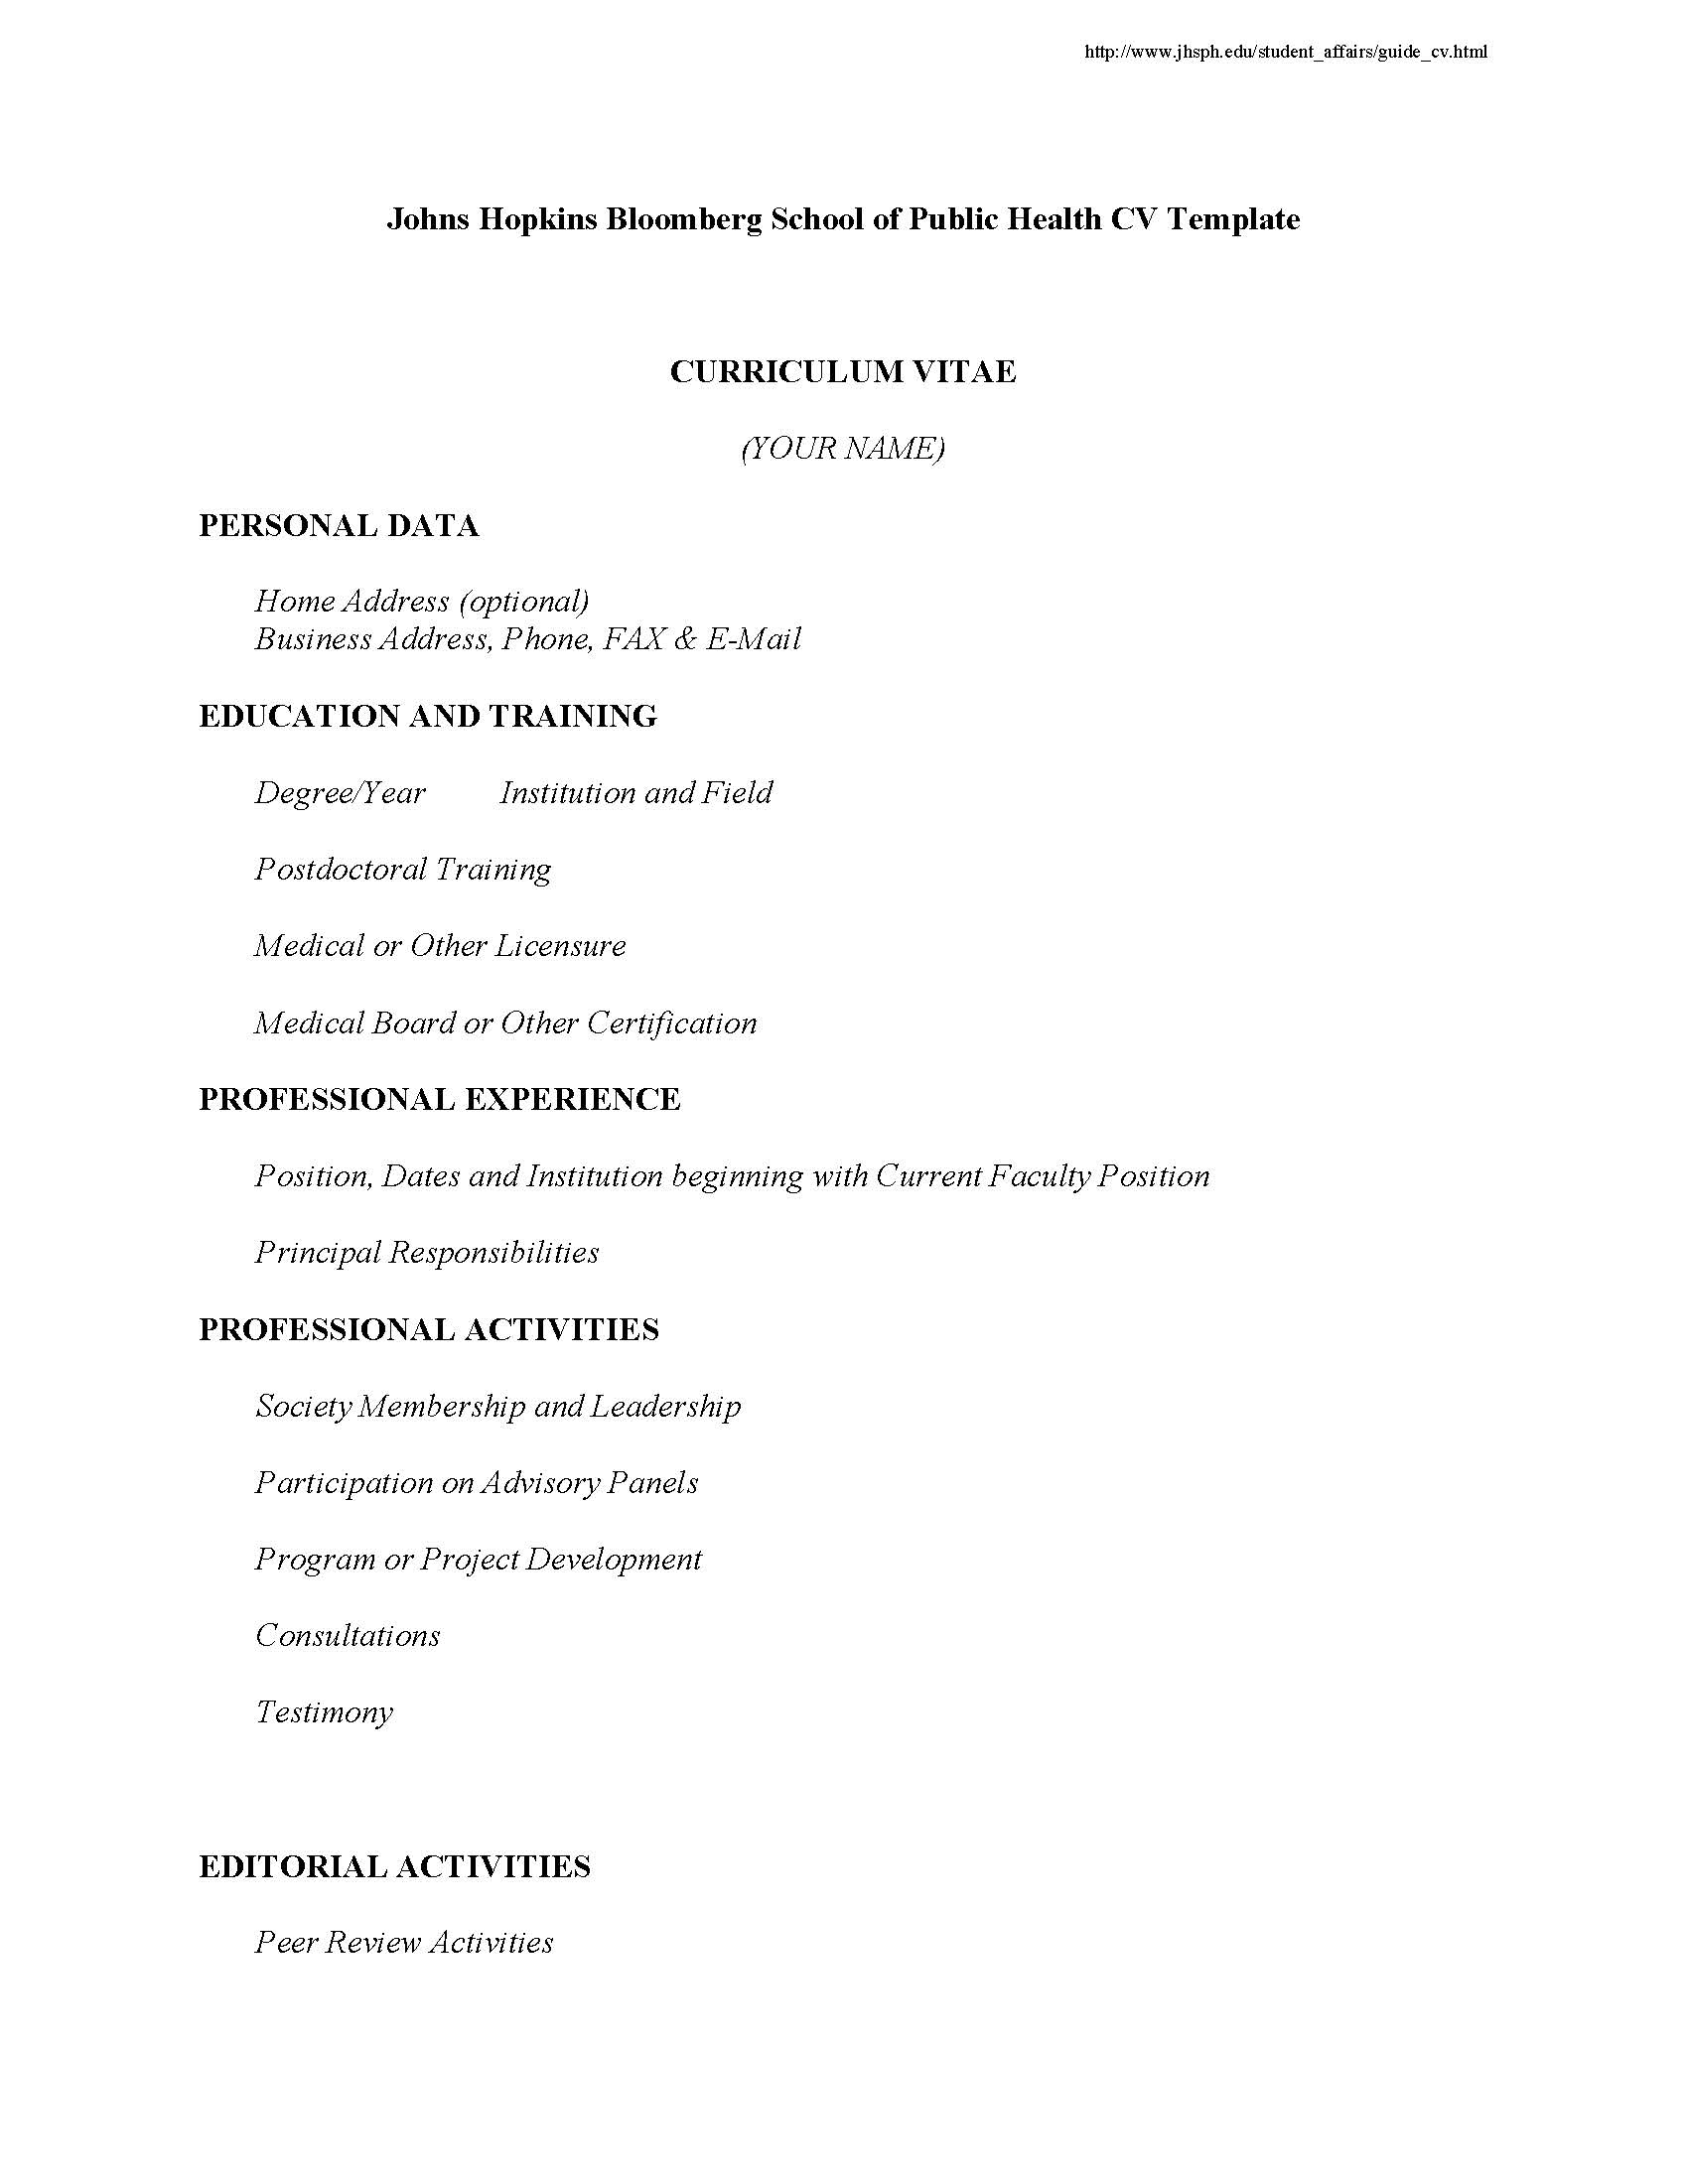 resumes and cvs career resources for students career services